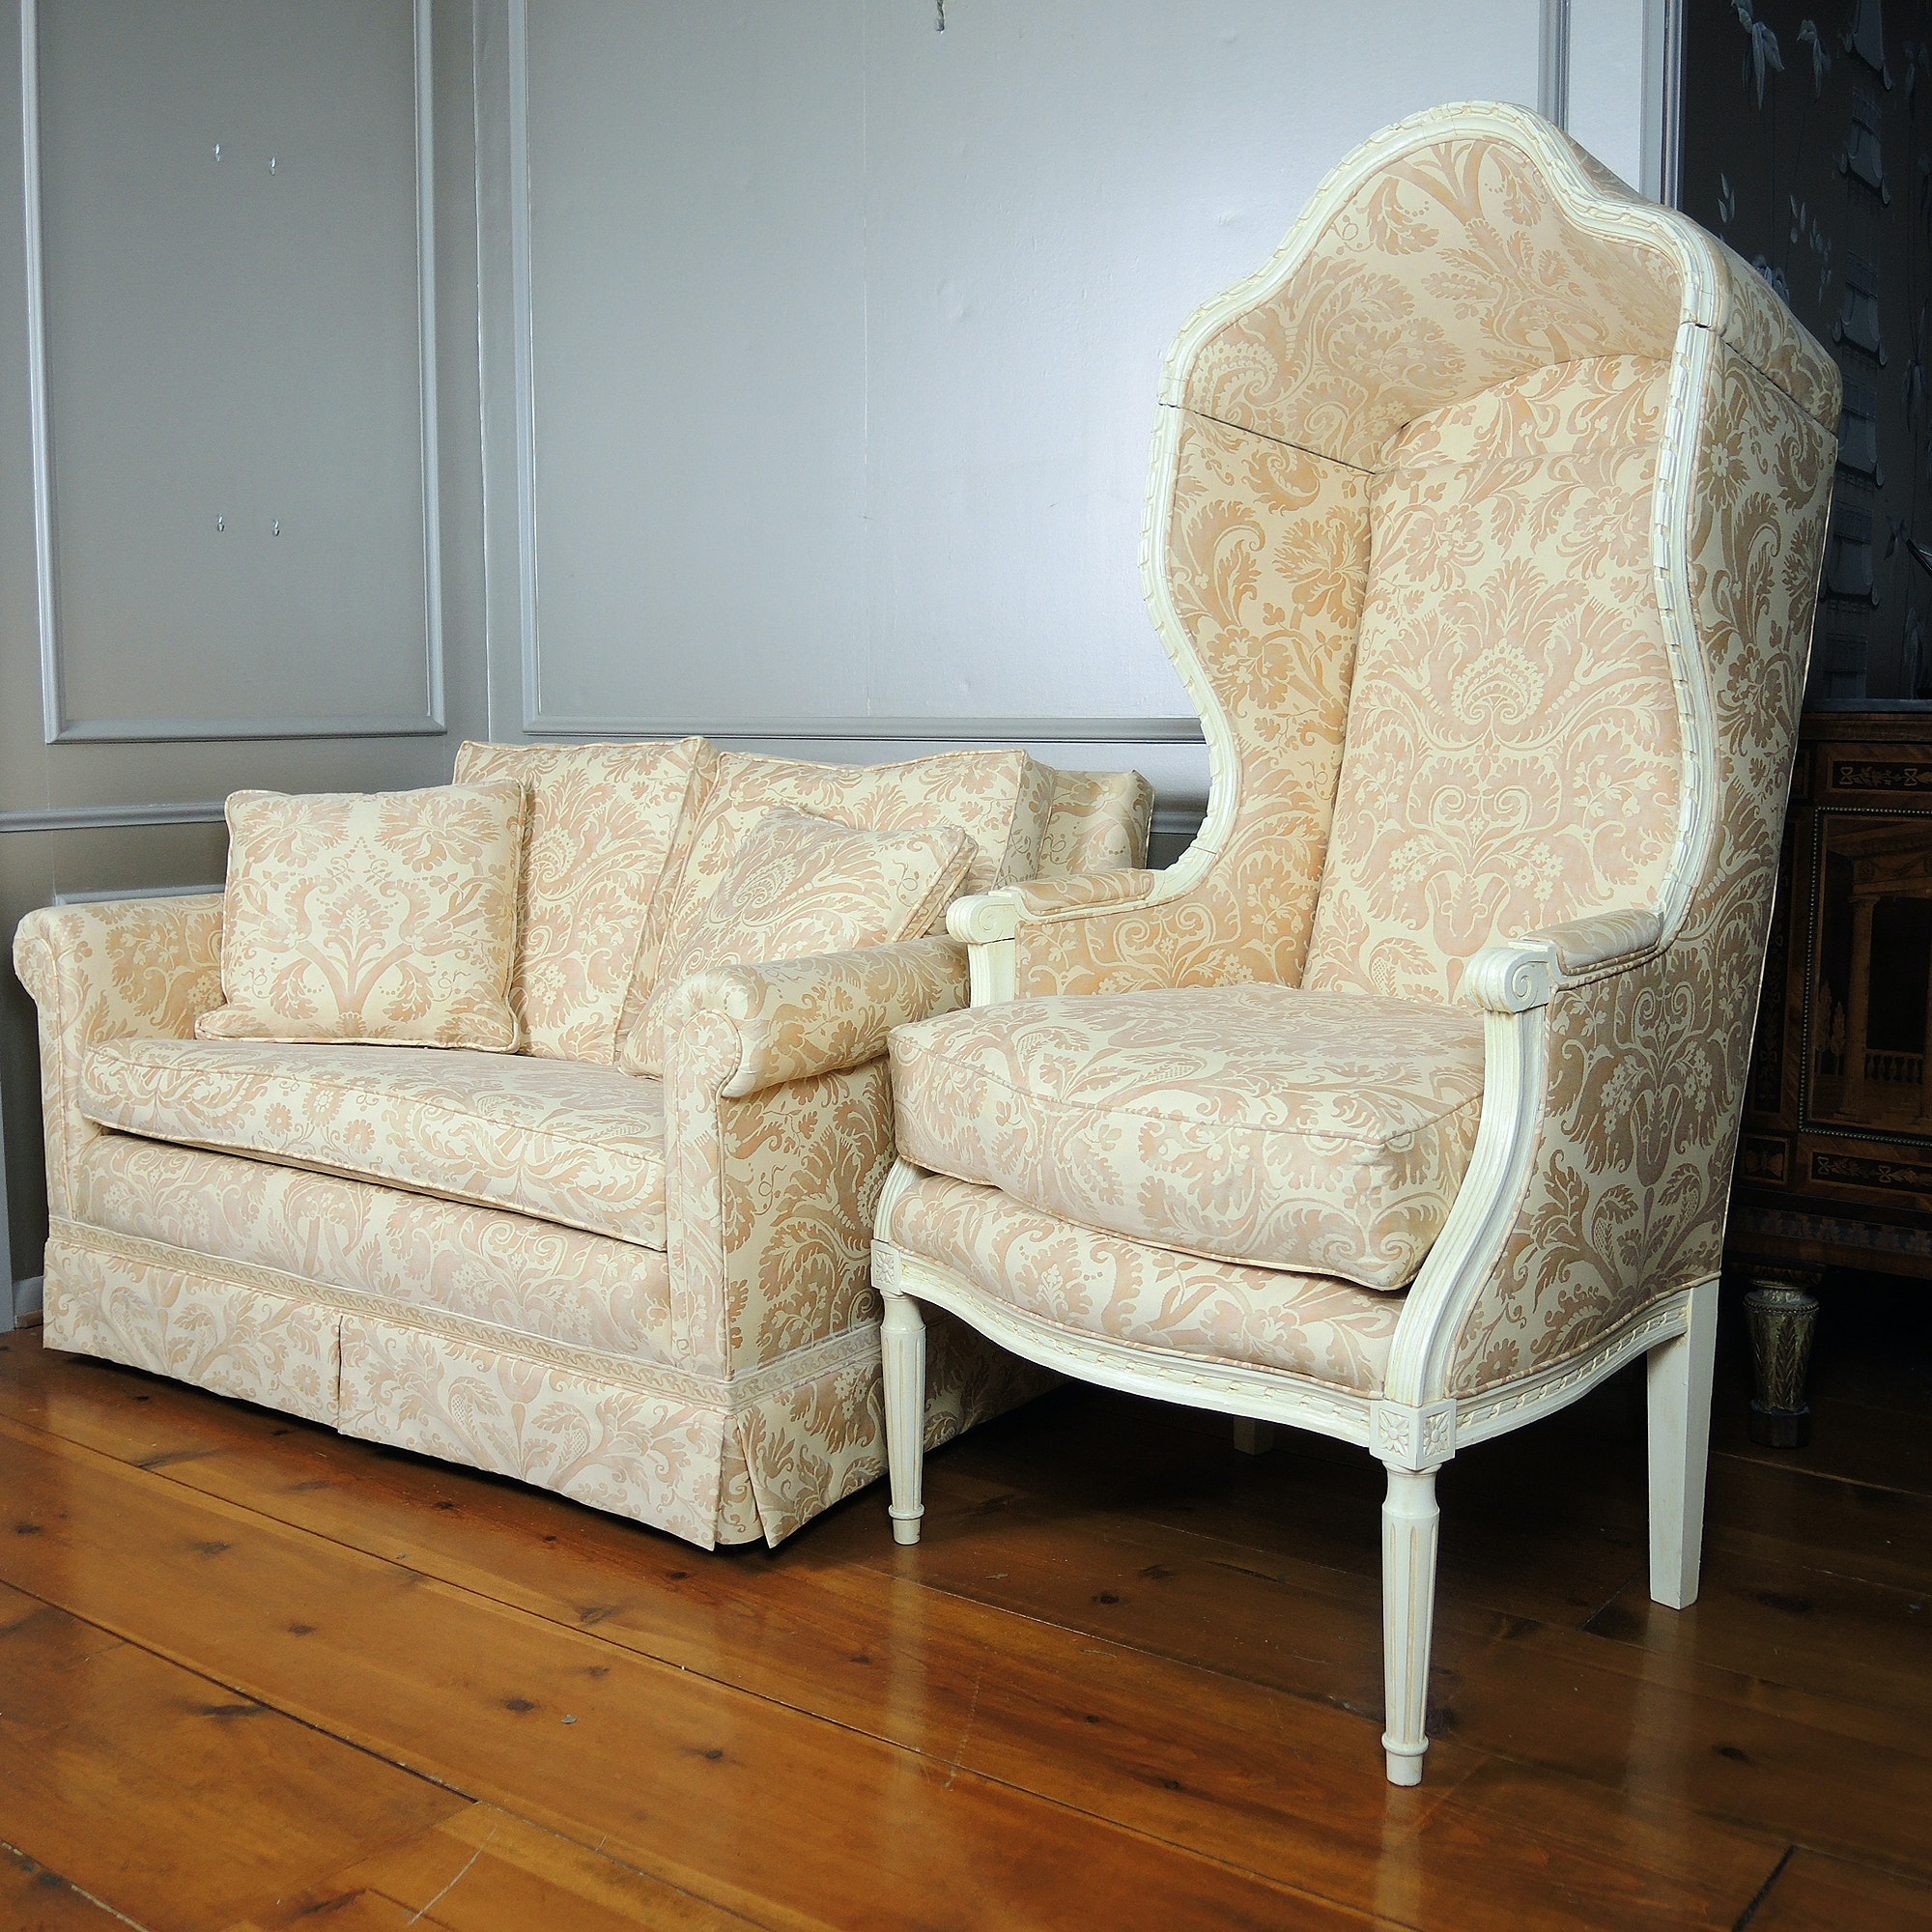 Porters Chair and Loveseat in Batik Pattern Upholstery